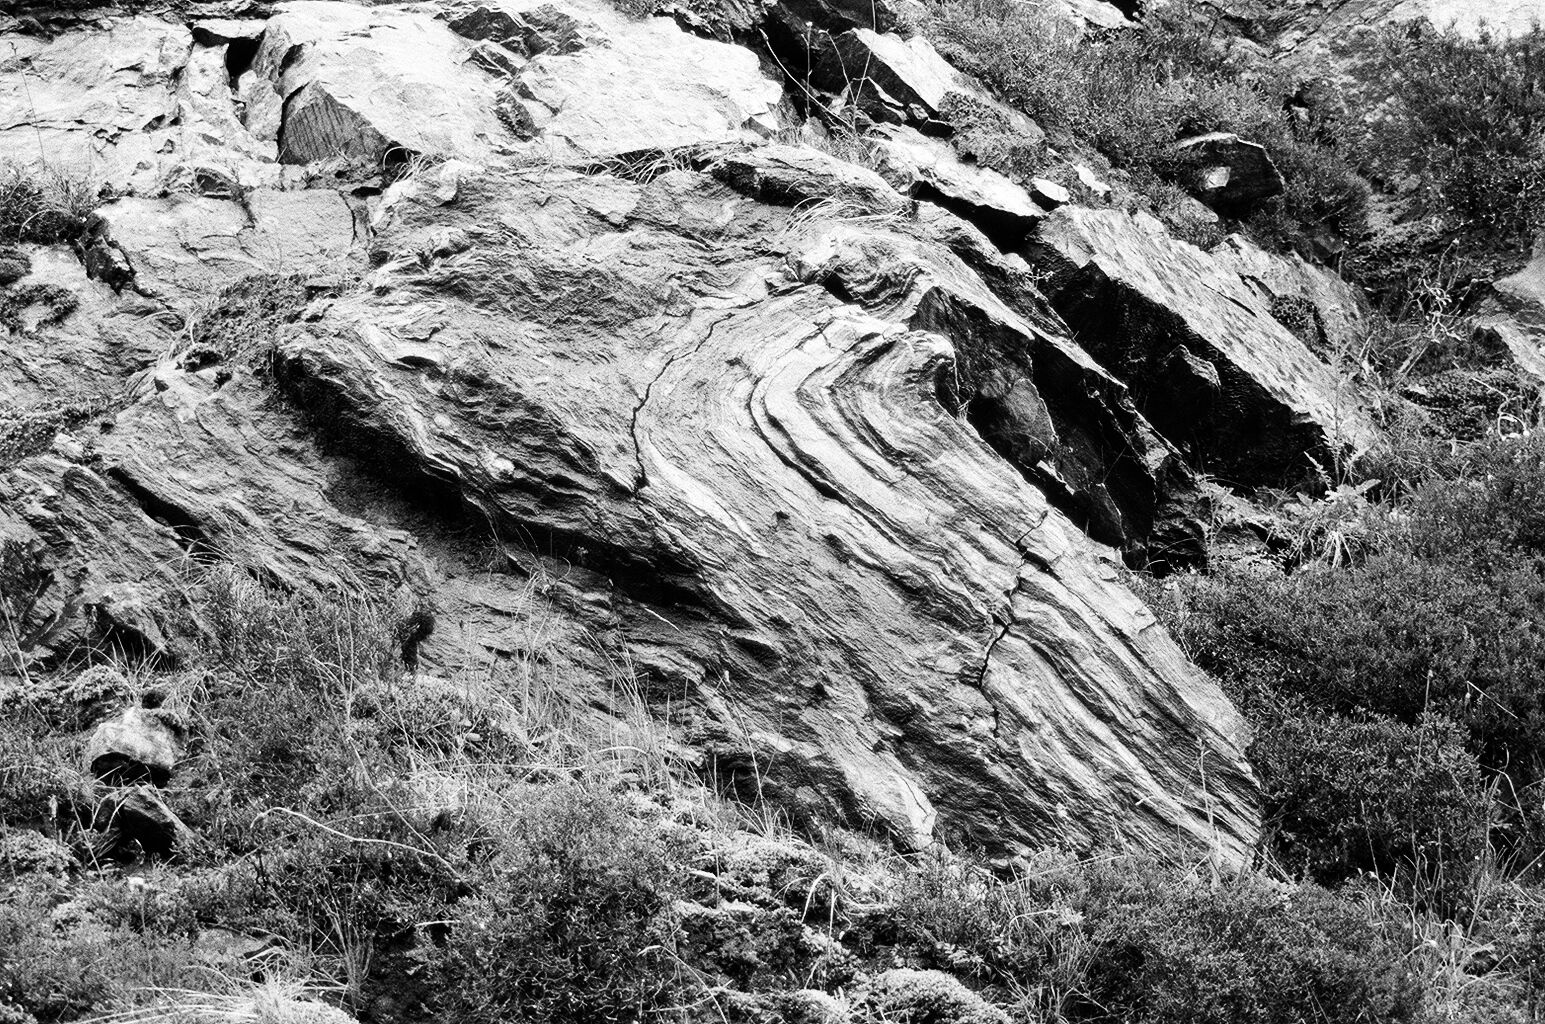 Kylie white,  Folded Lewisian Gneiss (up to 3 billion years old), near Moine Thrust Zone , Glen Elg - Arnisdale, 2017.Image Courtesy of the Artist